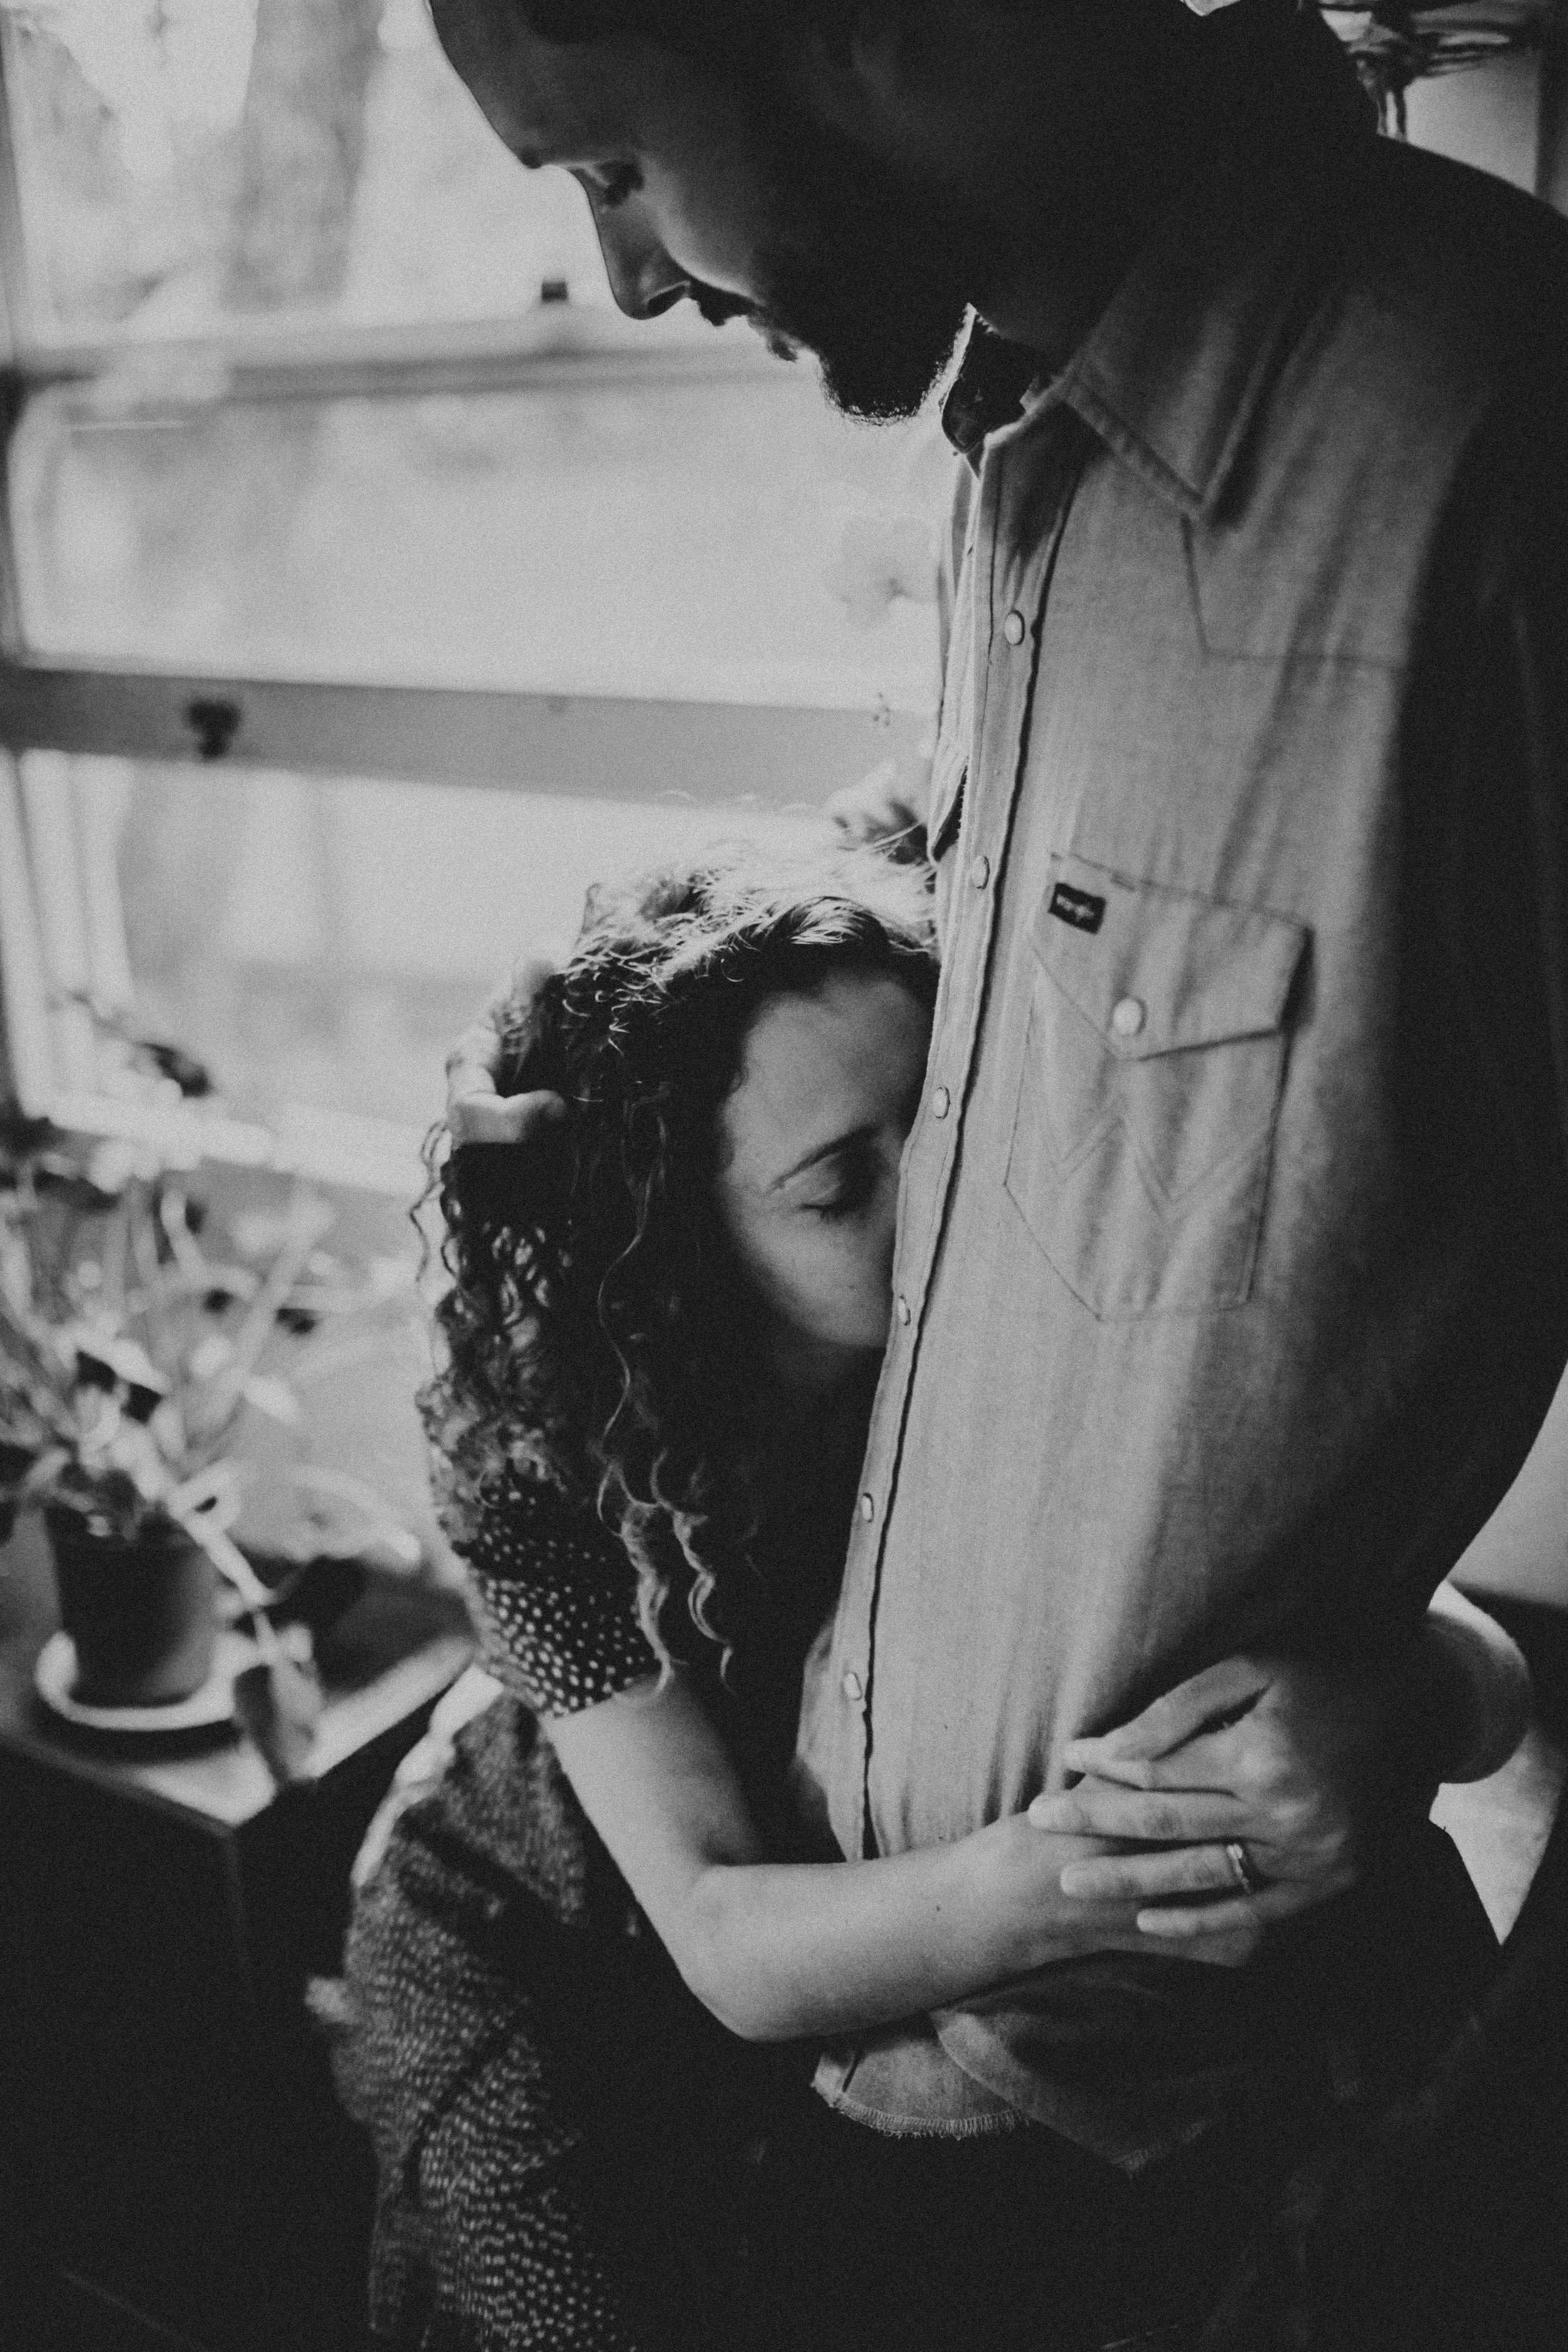 untitled-14.jpgCamilla-French-Photographer-Elopement-Wedding-Intimate-Couples-Families-Maternity-Townsville-Cairns-Queensland-Australia-16.jpg